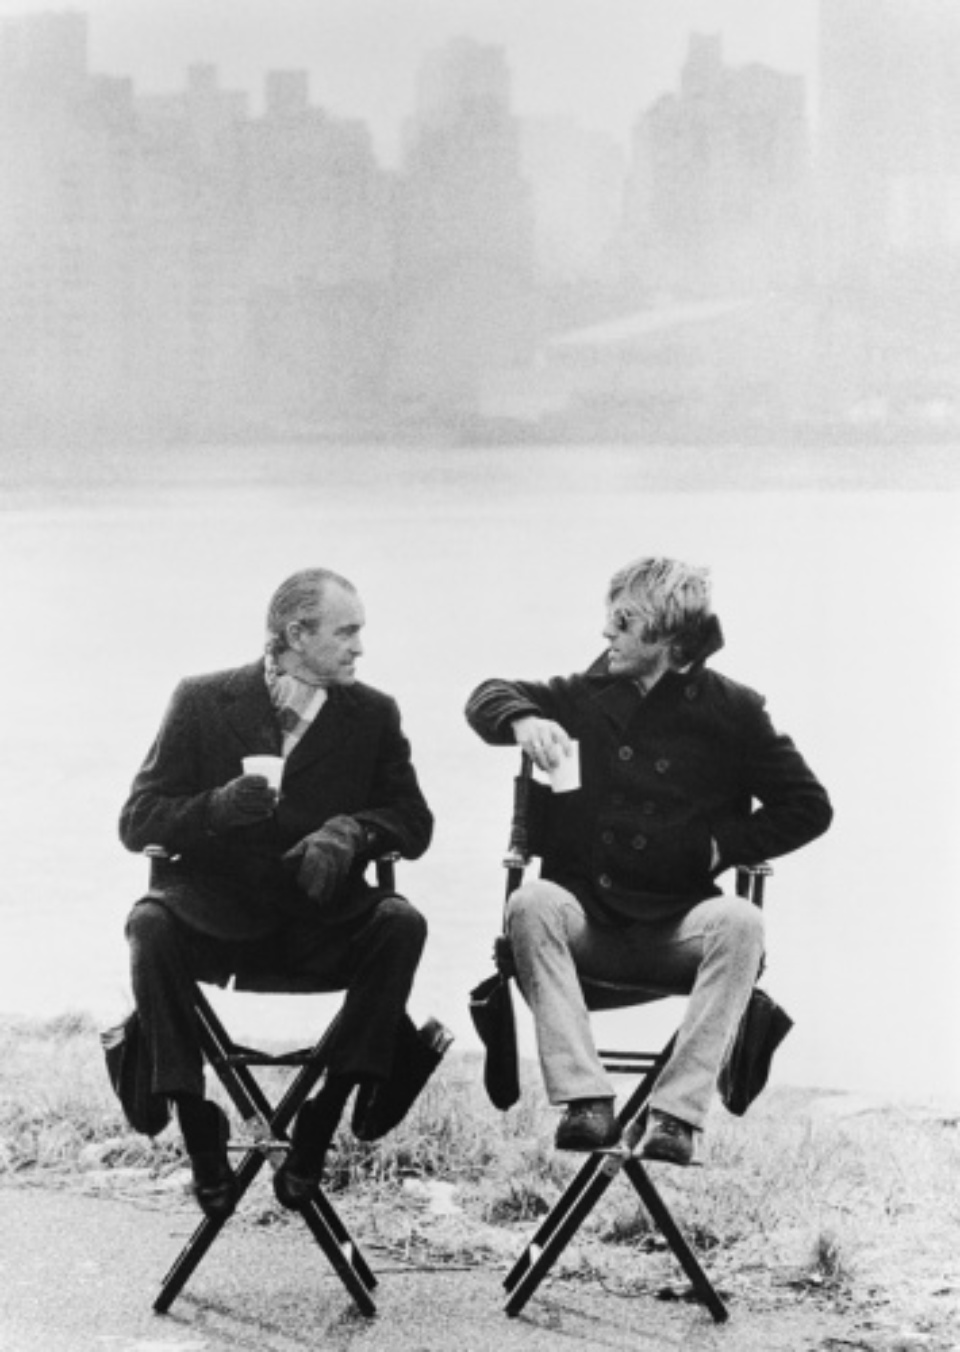 Terry O'Neill: Robert Redford and Richard Helms CIA Chief New York, 1975 Gelatin silver print, printed later Signed on recto Signed and numbered on verso 50 x 40 cm Editioned